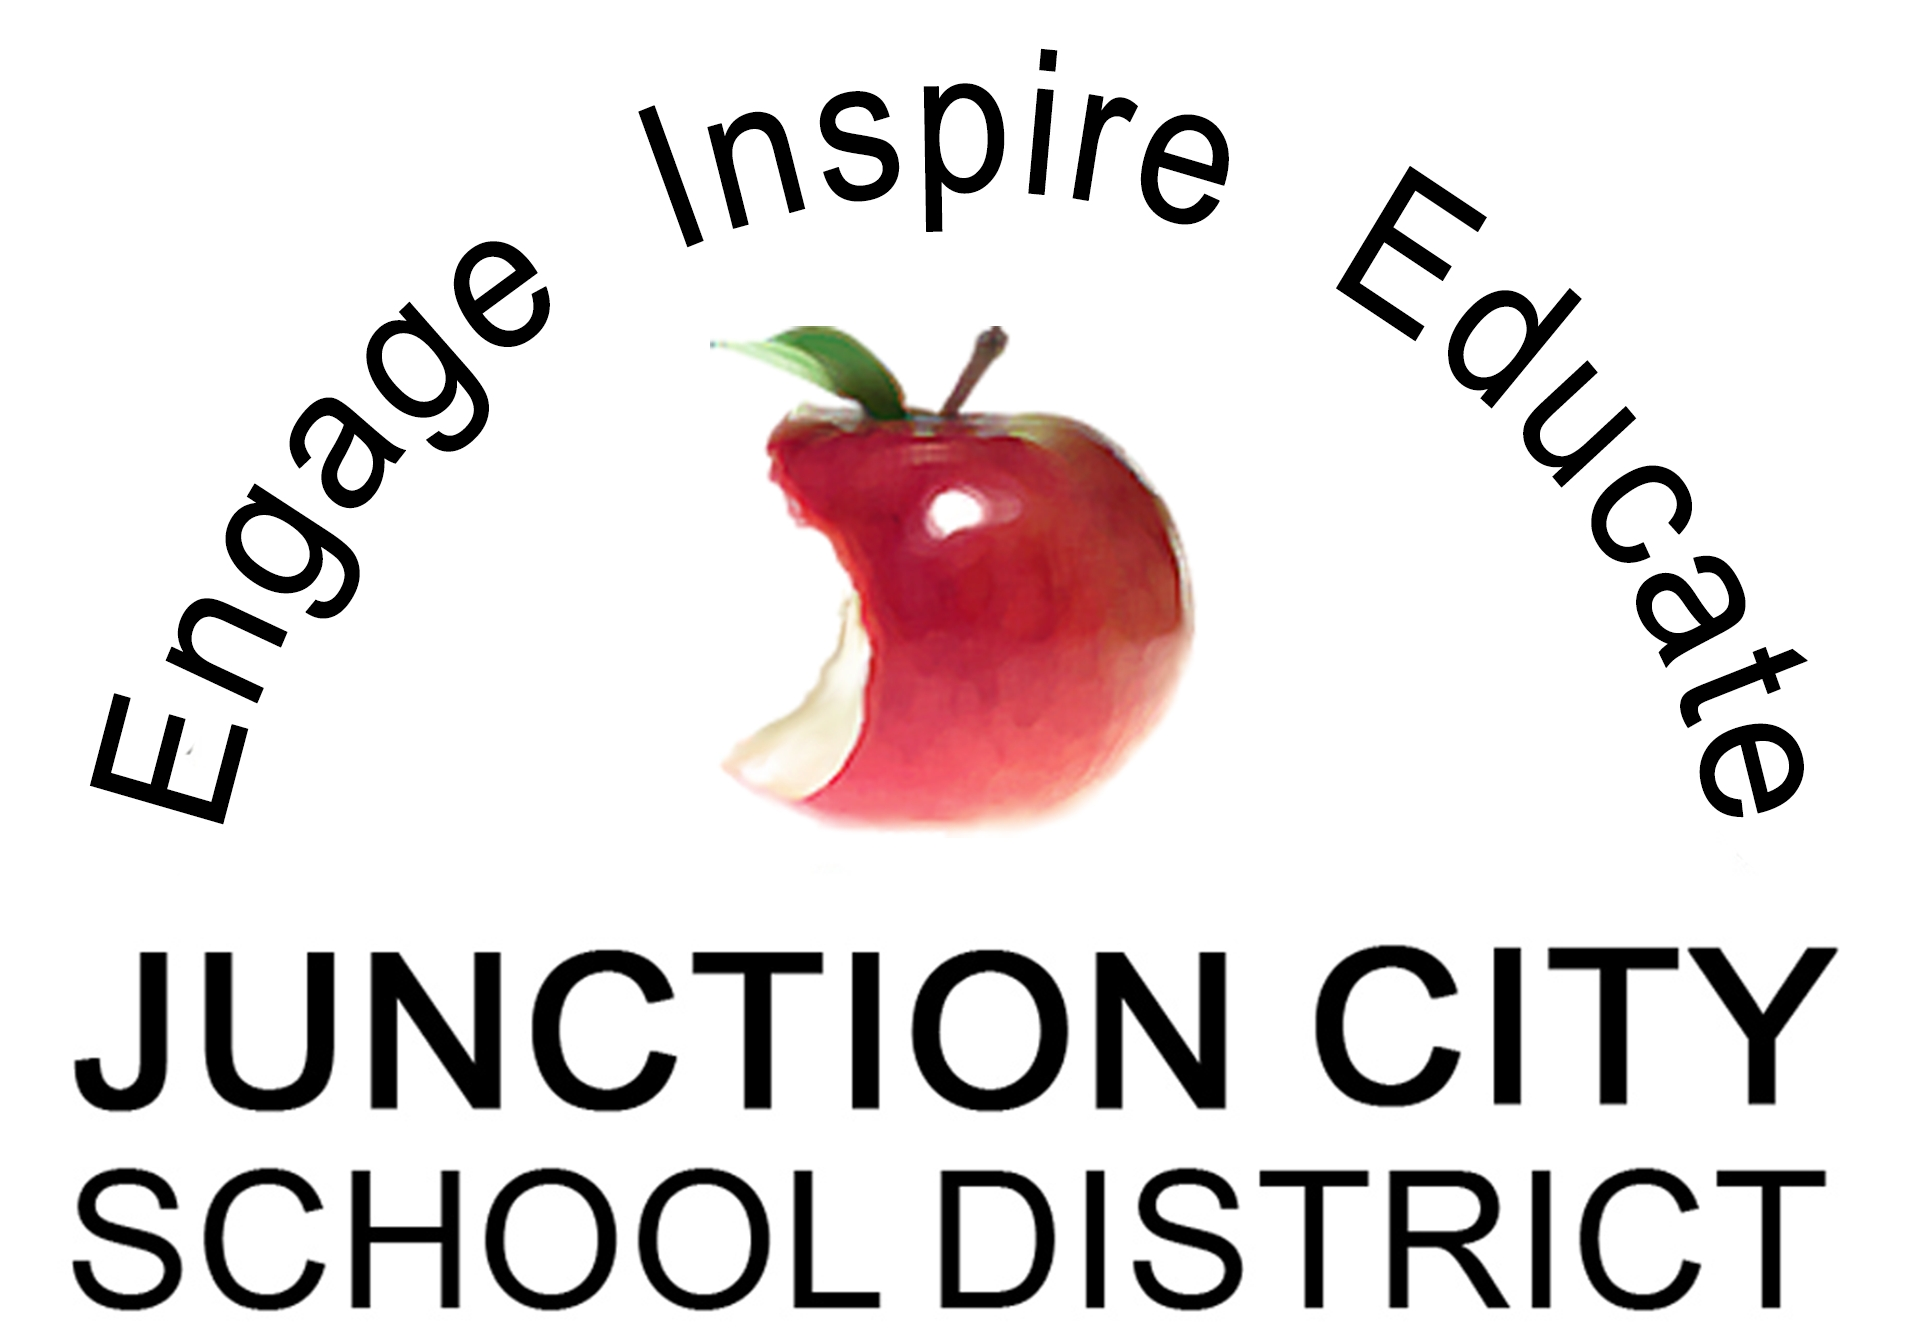 JUNCTION CITY SCHOOL DISTRICT